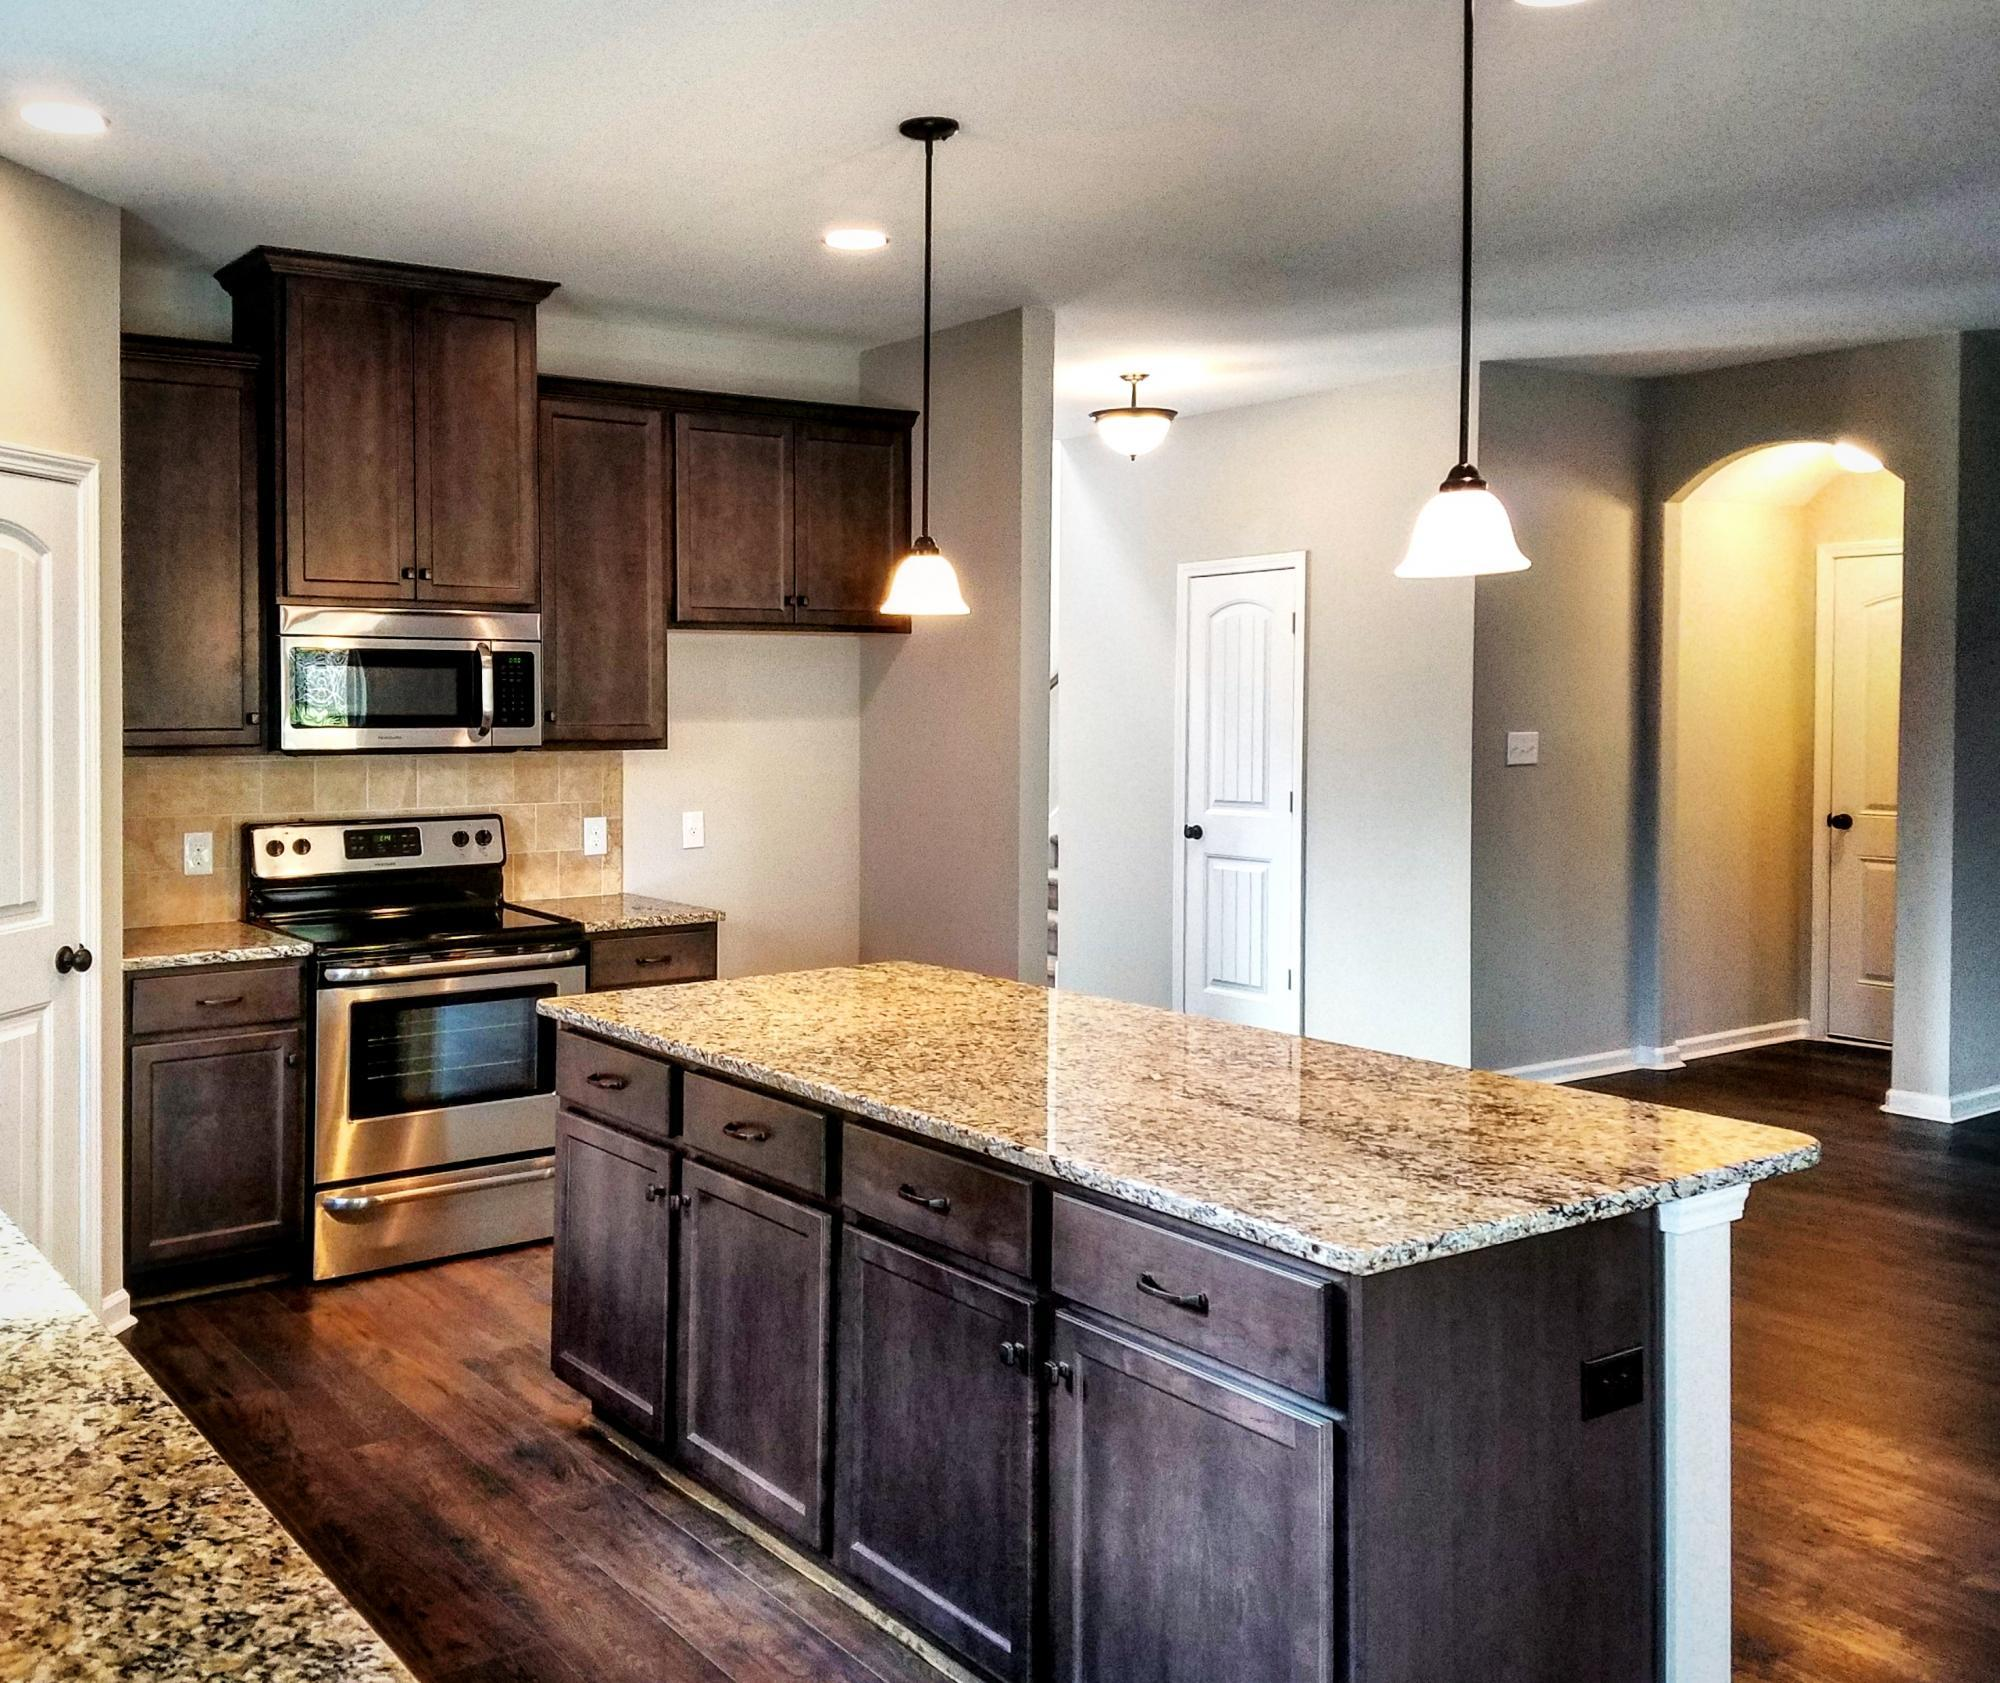 Kitchen featured in the Crawford By Konter Quality Homes in Savannah, GA